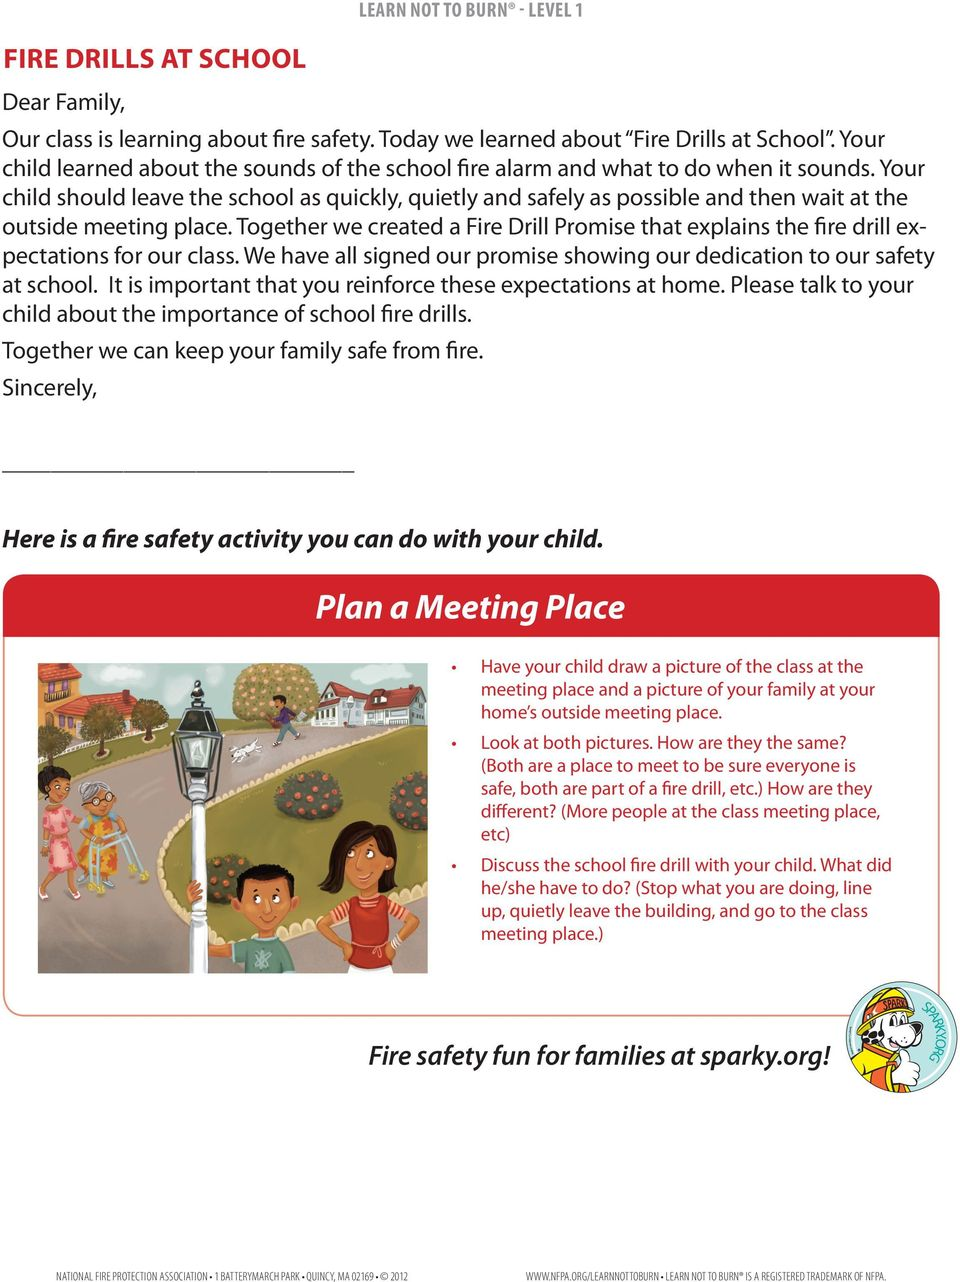 Your child should leave the school as quickly, quietly and safely as possible and then wait at the outside meeting place.